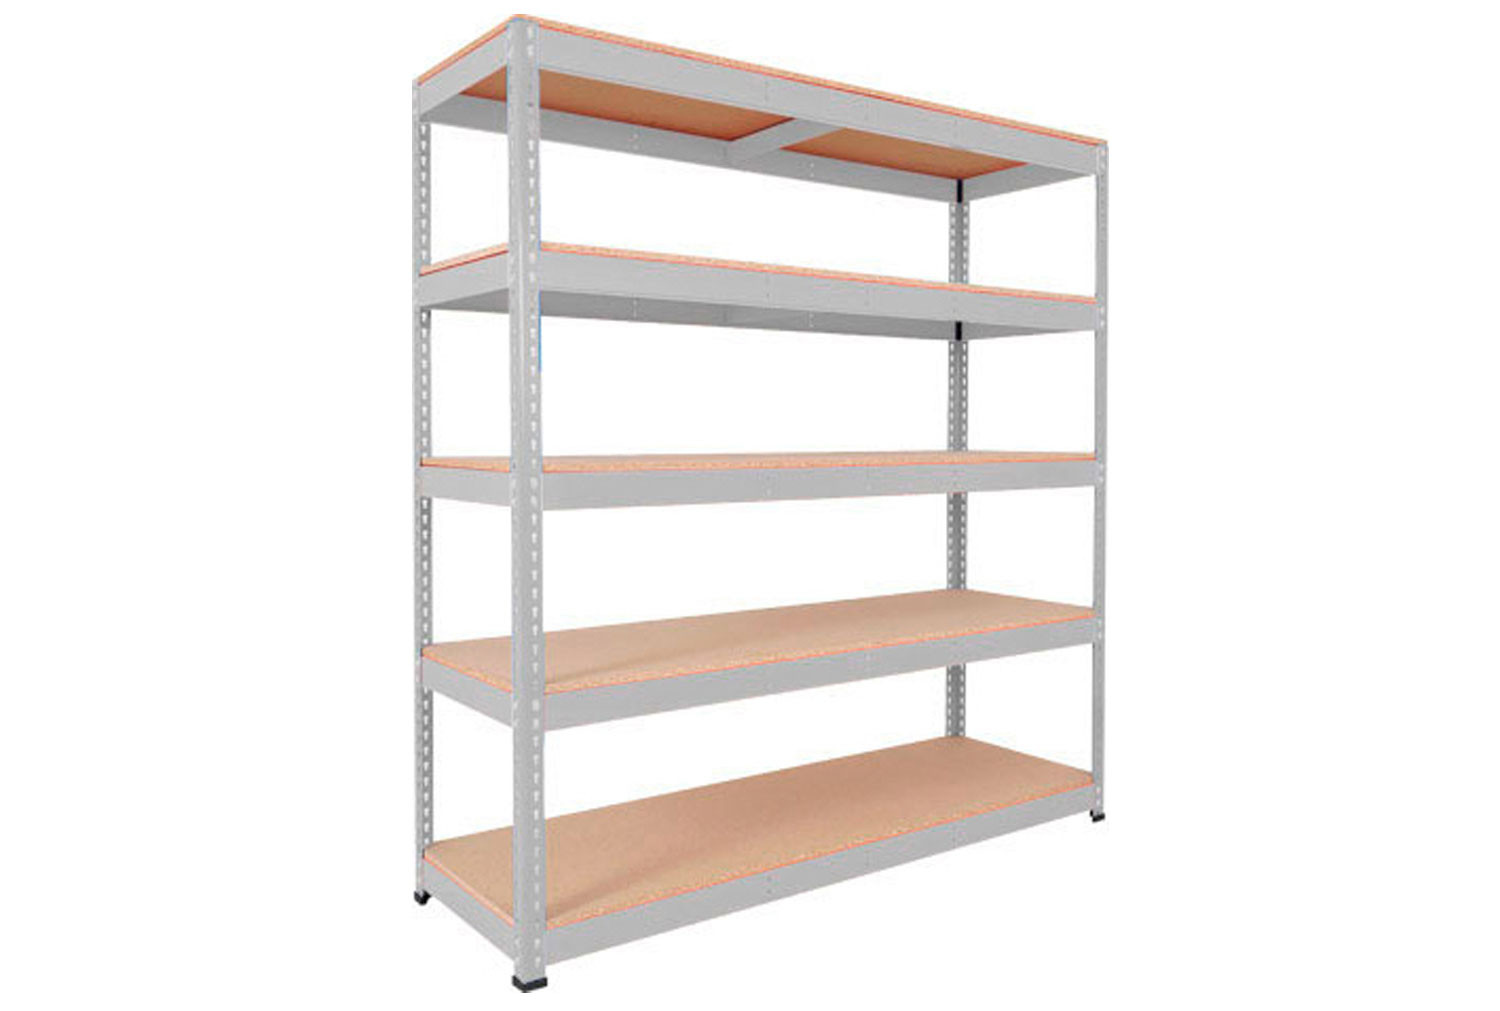 Rapid 1 Heavy Duty Shelving With 5 Chipboard Shelves 1220wx1980h (Grey)